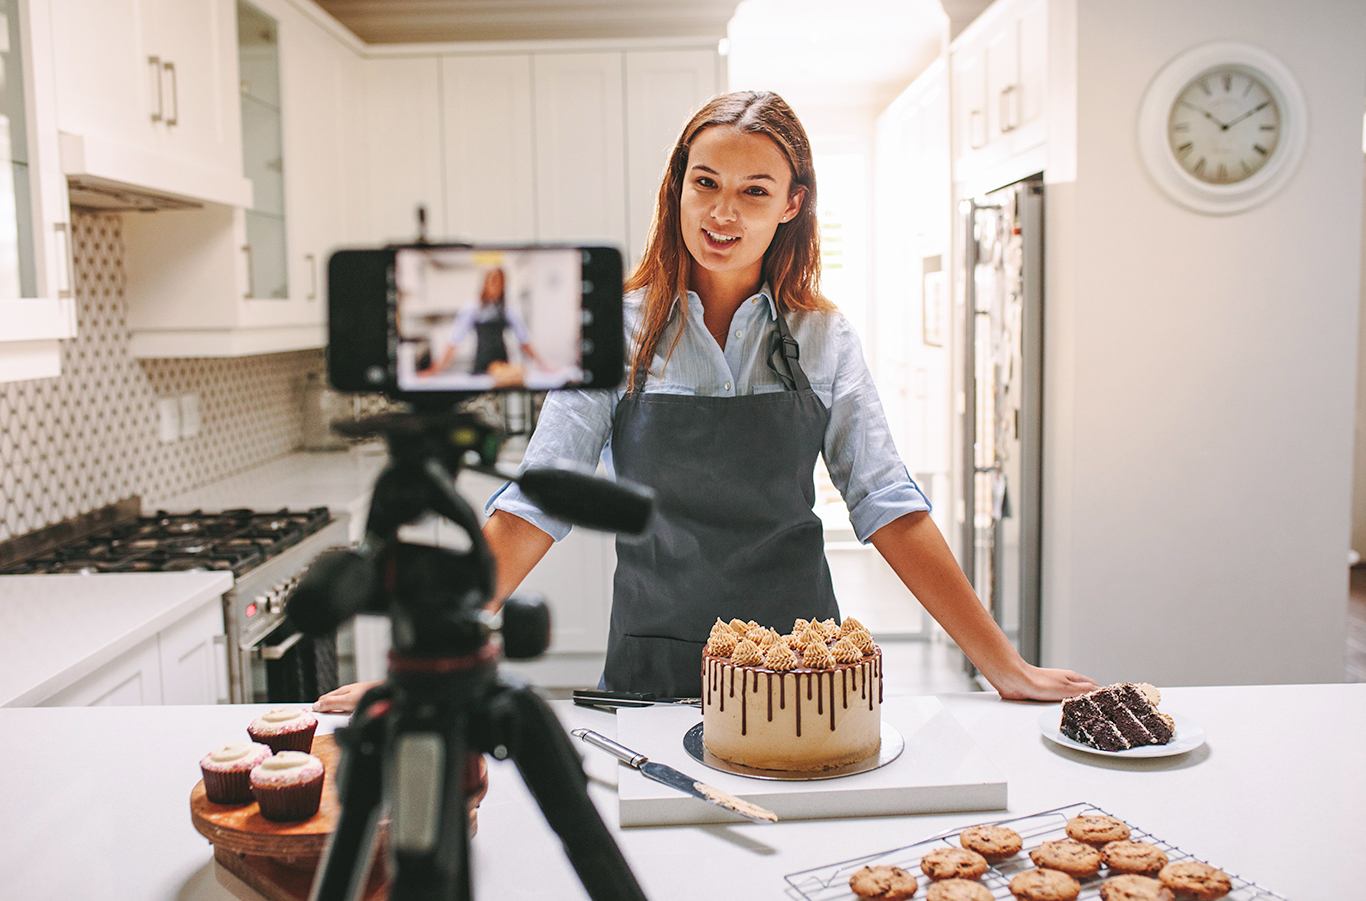 young woman uses Camera to interact with audience while baking a cake.